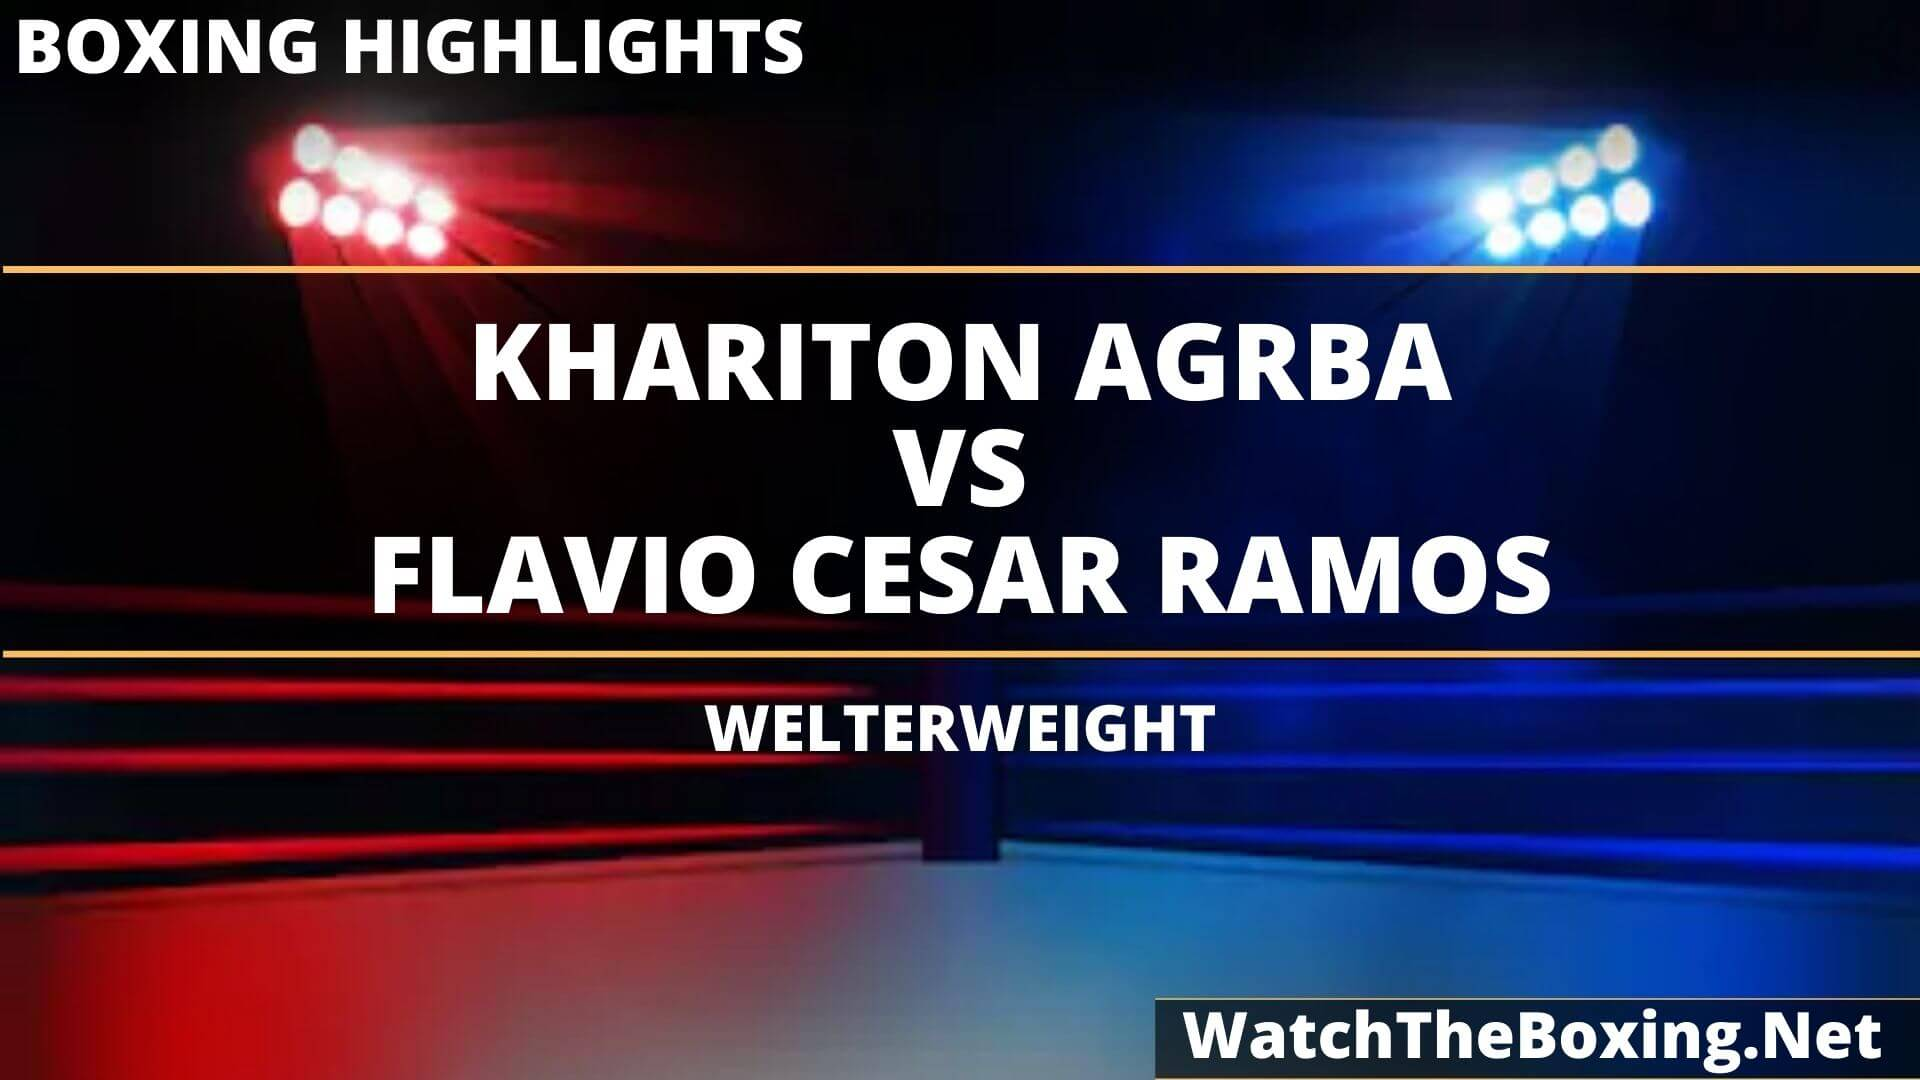 Khariton Agrba Vs Flavio Ramos Highlights 2020